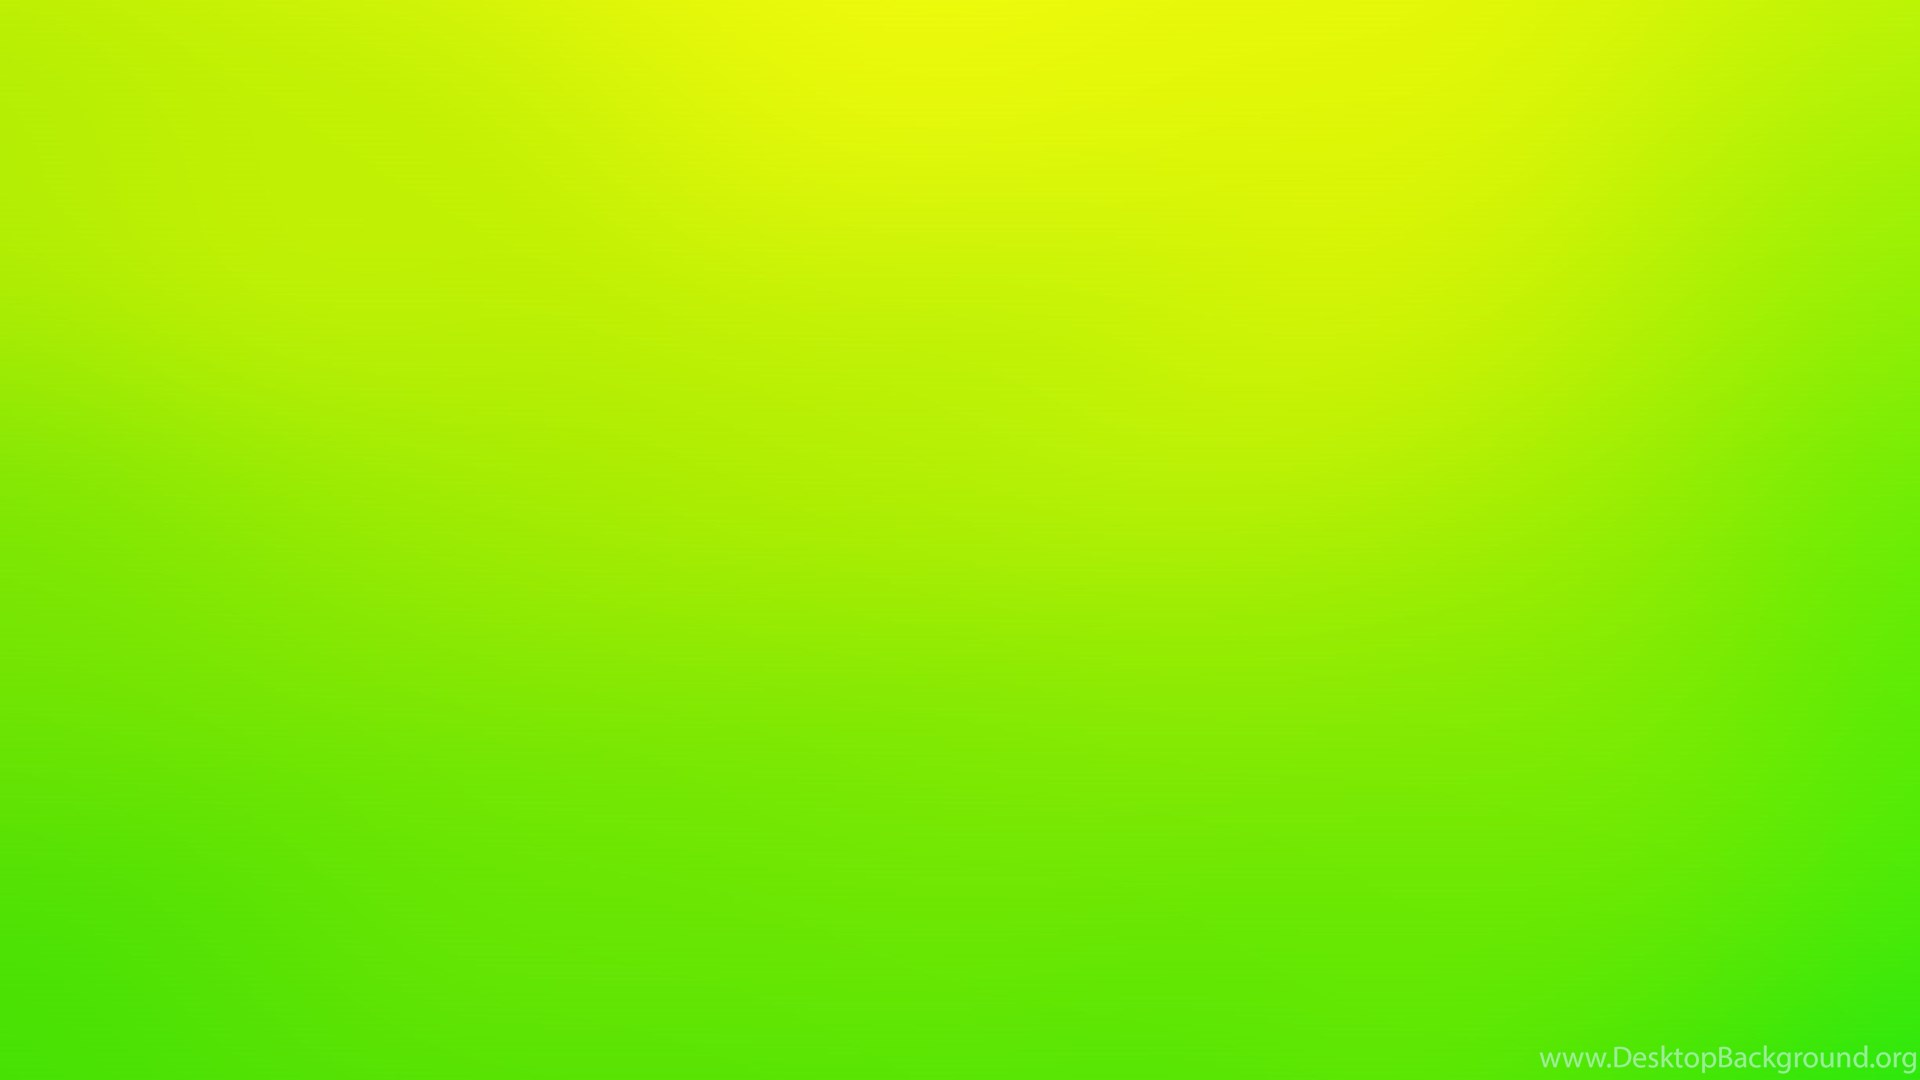 Iphone 7 Wallpaper Size Green Yellow Wallpapers Wallpapers Hd Wide Desktop Background